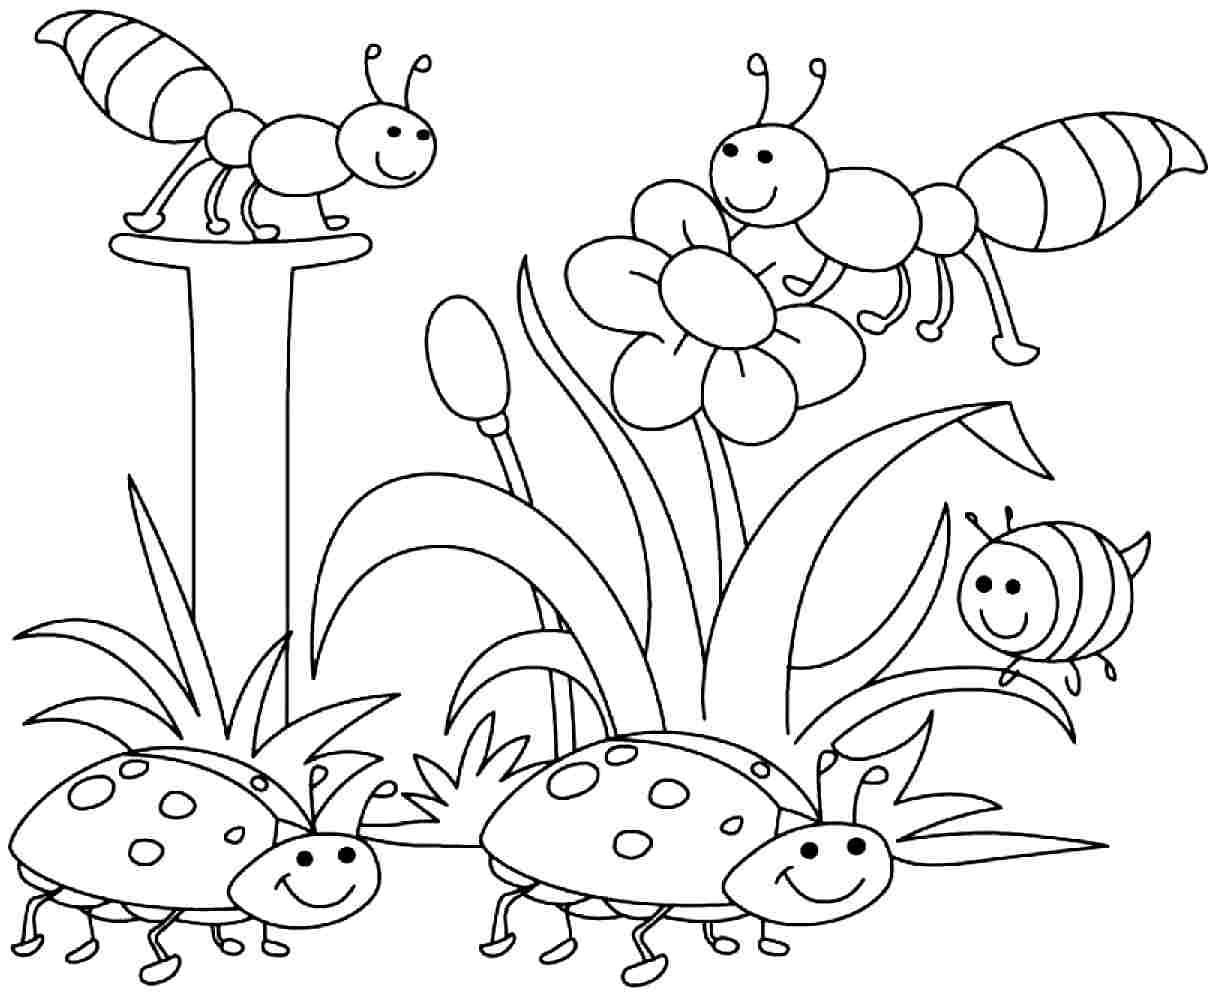 1216x997 Bugs Coloring Pages Preschool Coloring Pages With Insects Anfuk